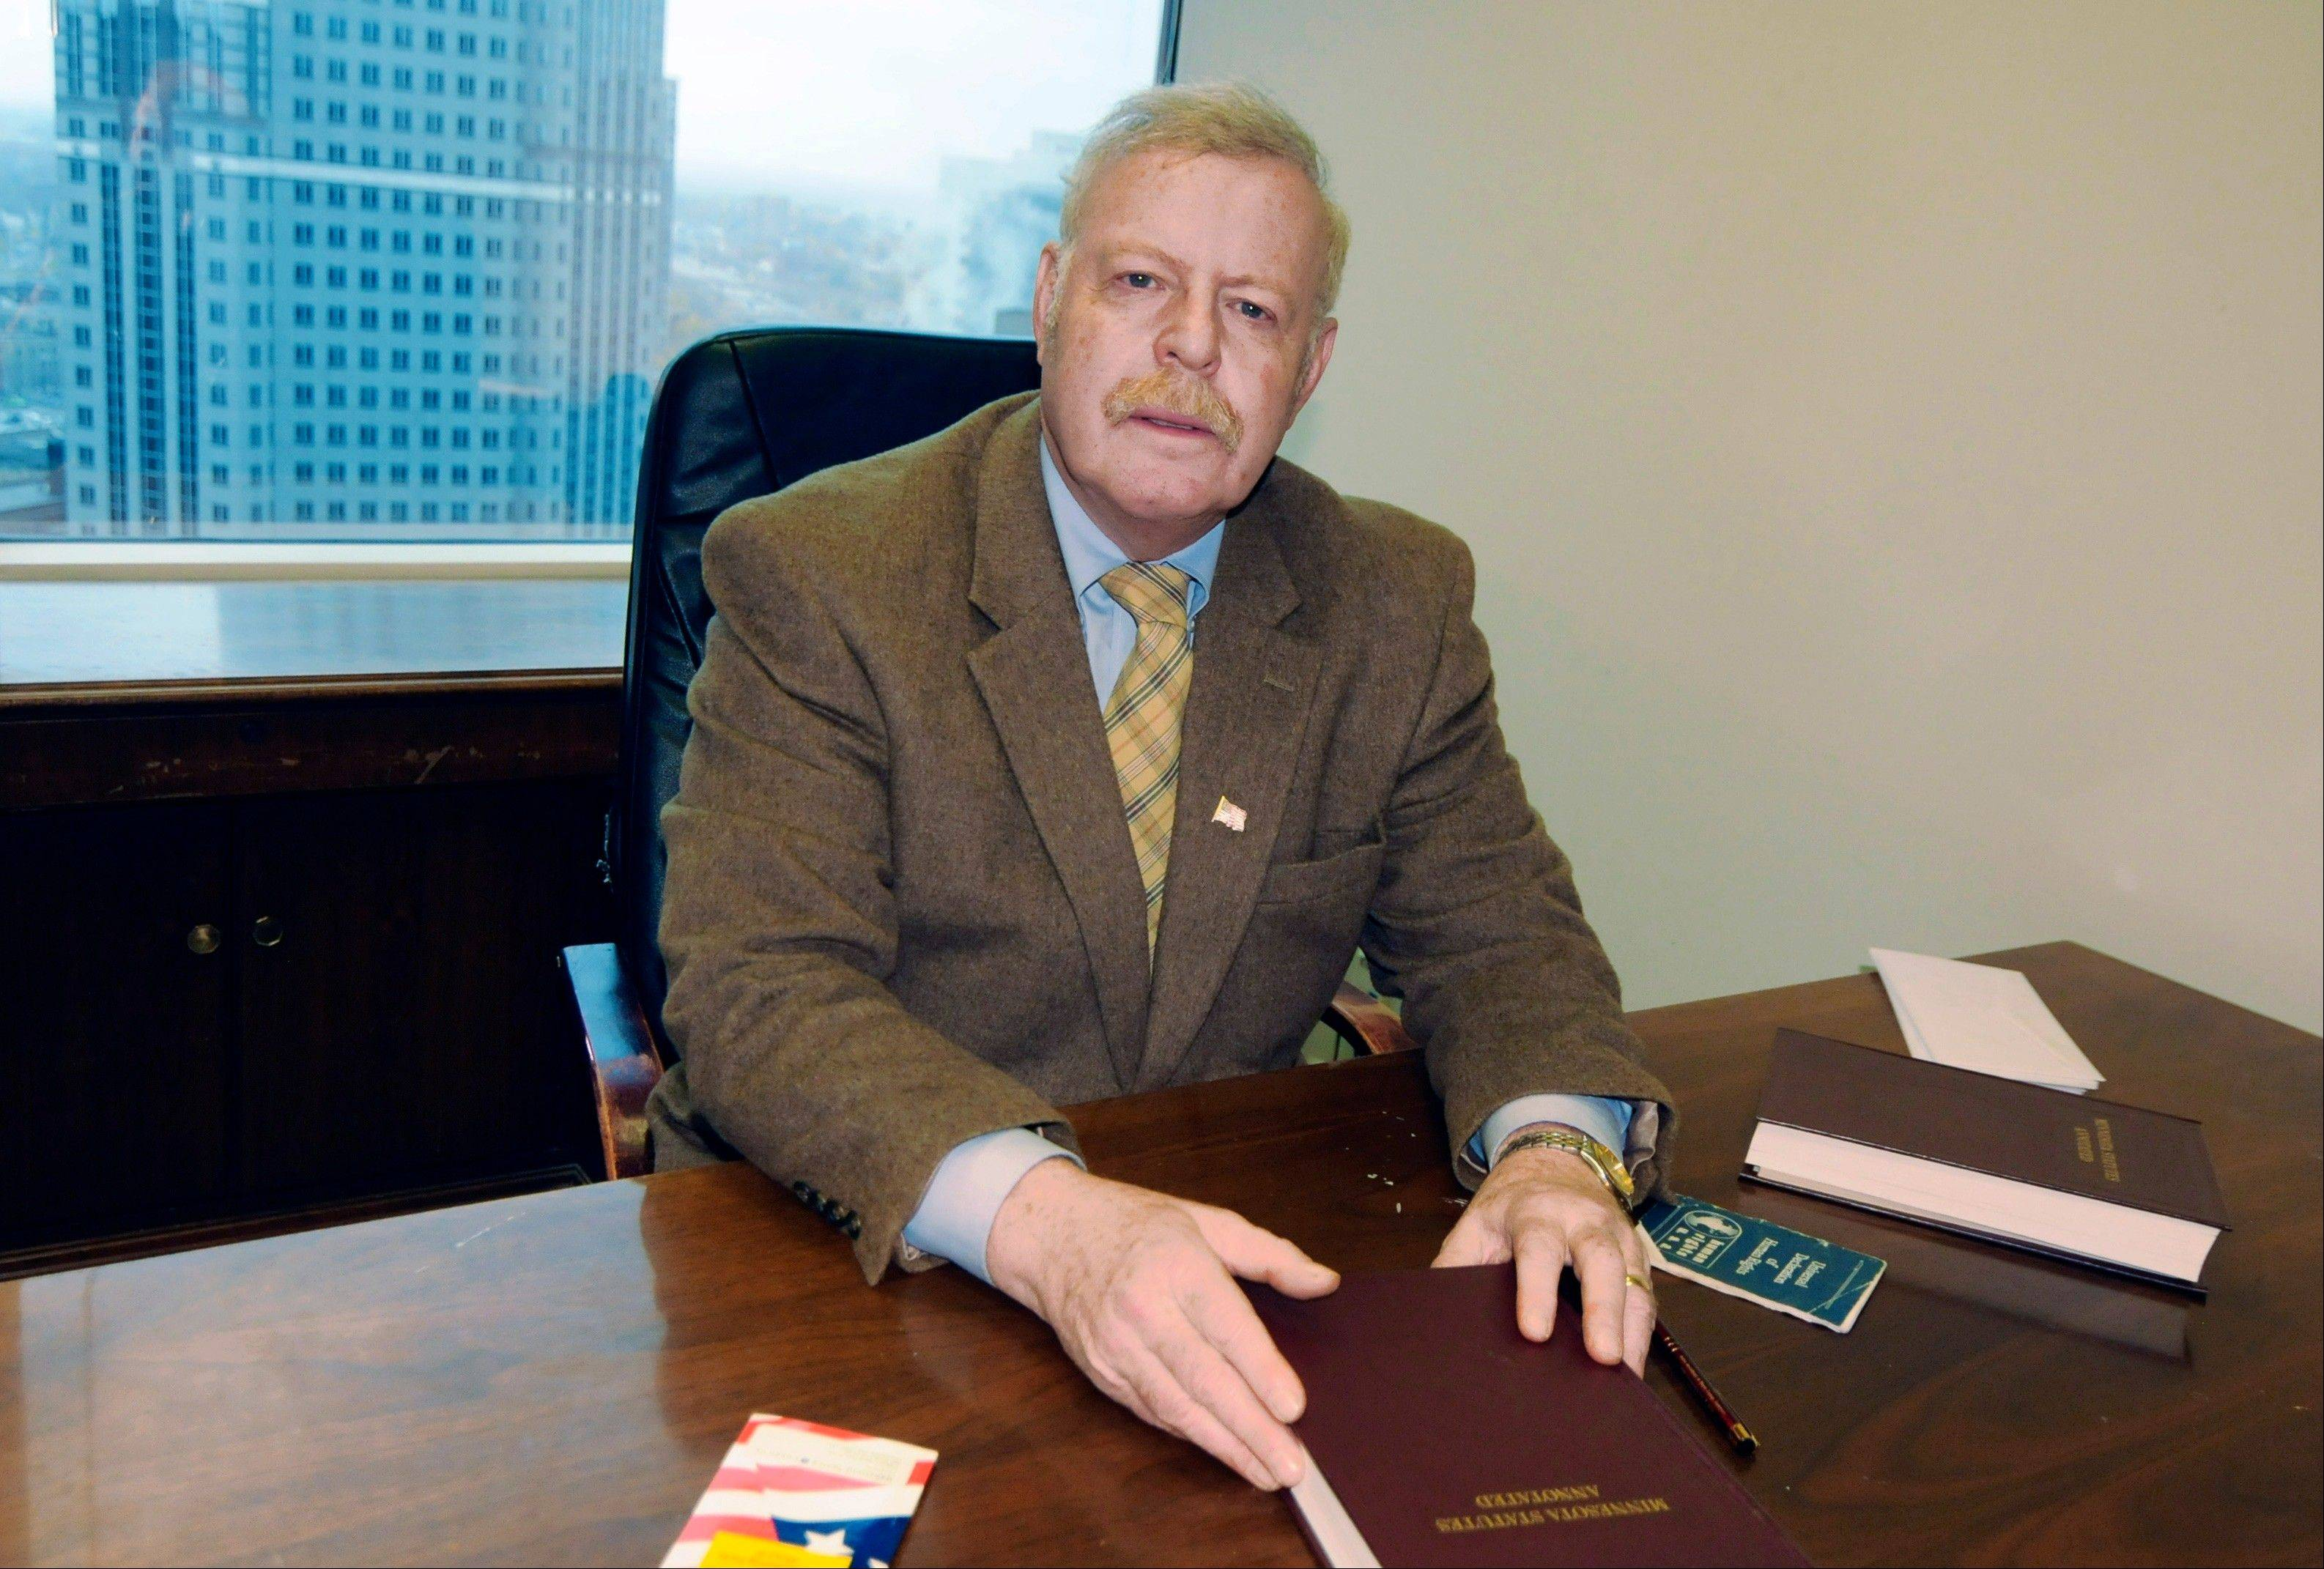 Marshall Tanick, attorney for Dr. David McKee, poses for photos in his Minneapolis office on Wednesday. McKee sued a patient's son for defamation after critical remarks about him were posted on rate-your-doctor websites.